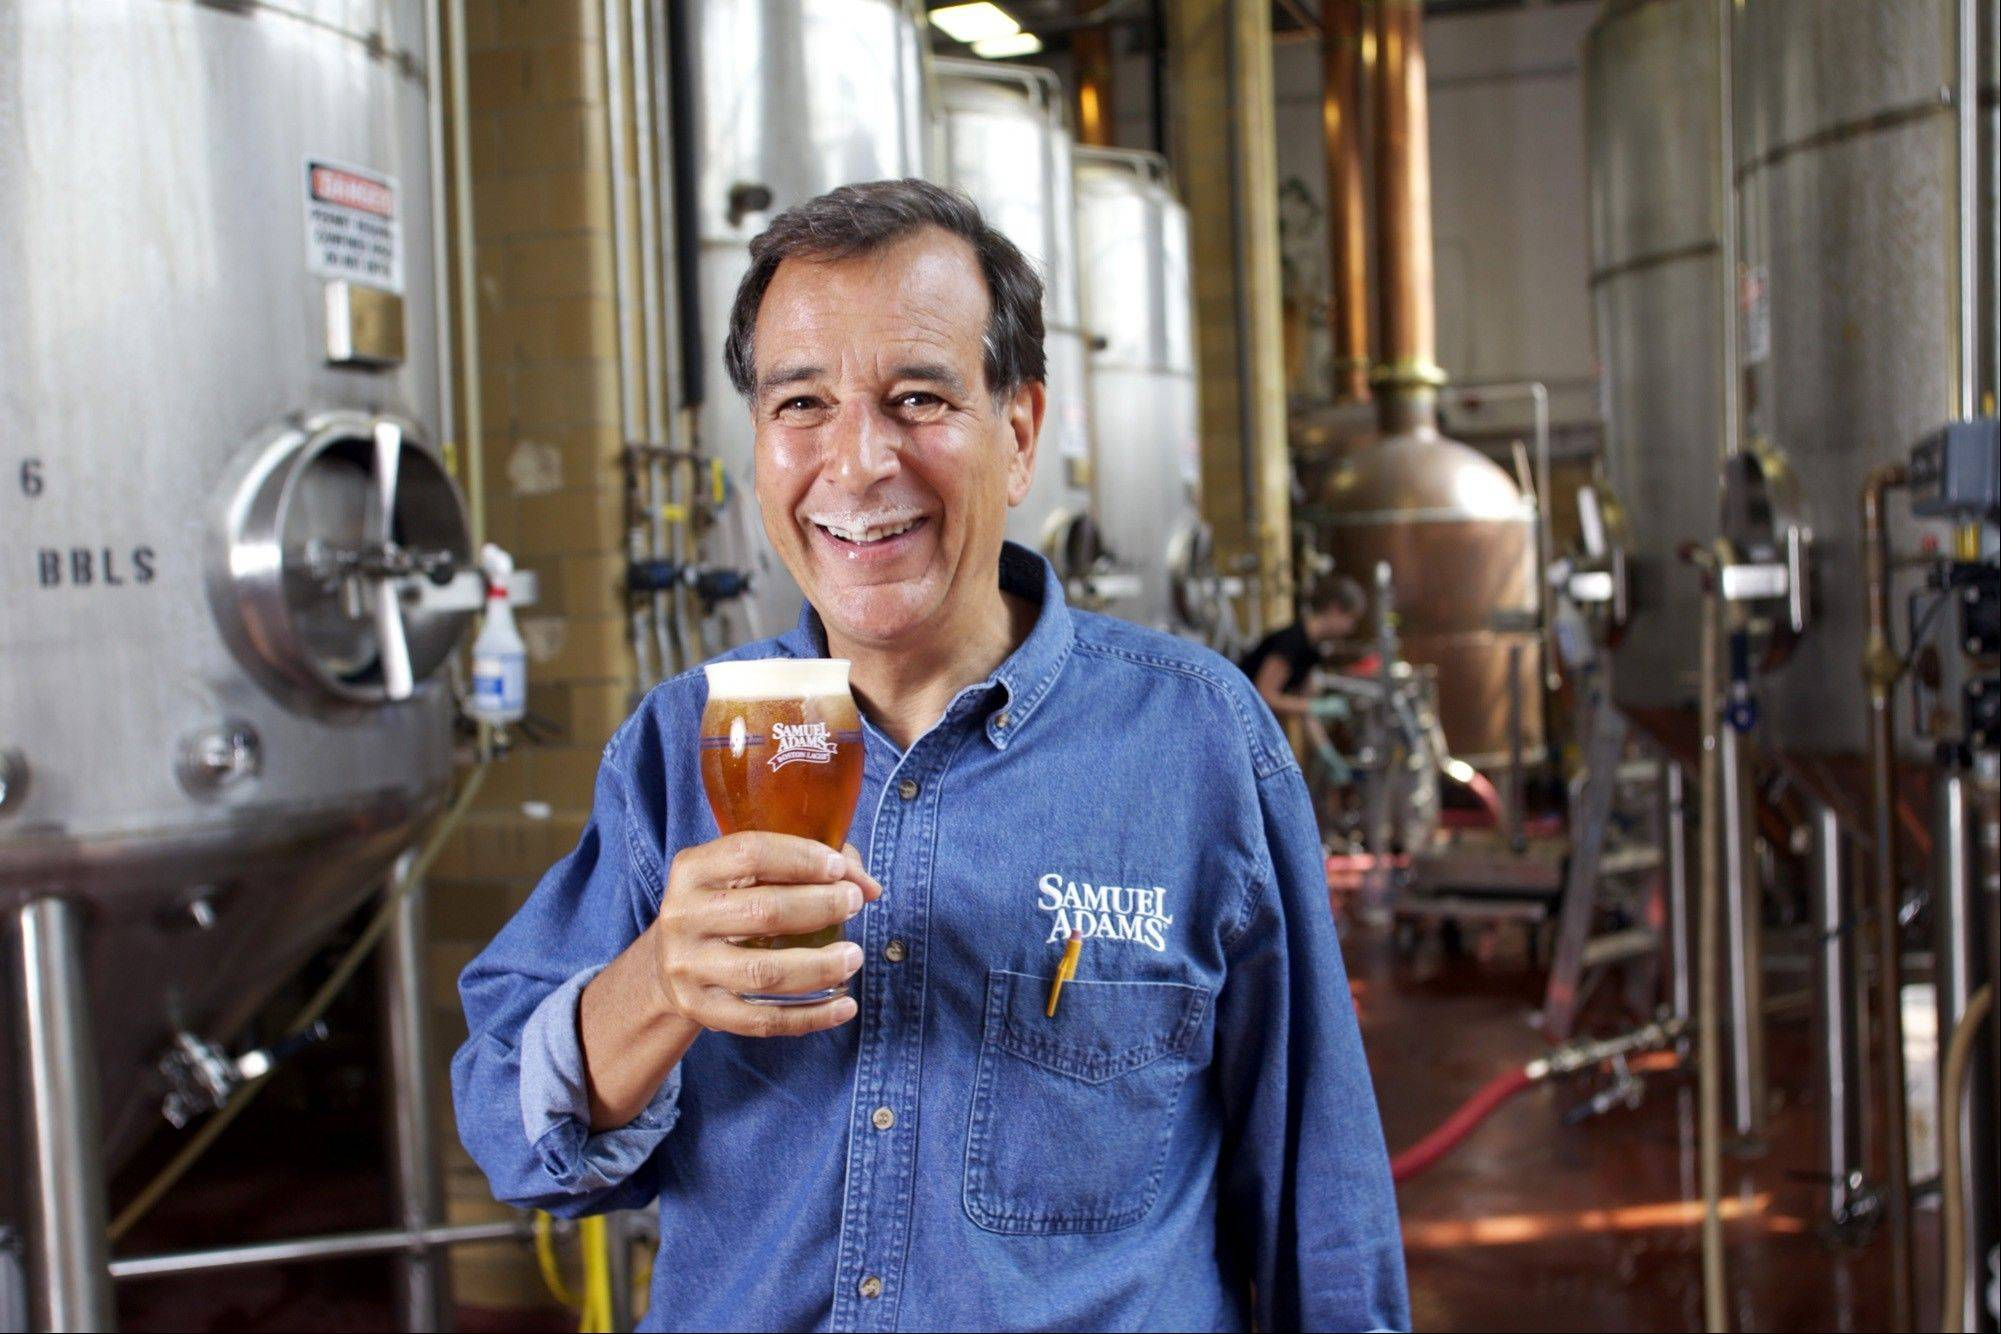 "Craft beer shares are up tenfold since mid-2009, propelling C. James ""Jim"" Koch'snet worth above $1 billion, according to the Bloomberg Billionaires Index. He has never appeared on an international wealth ranking."